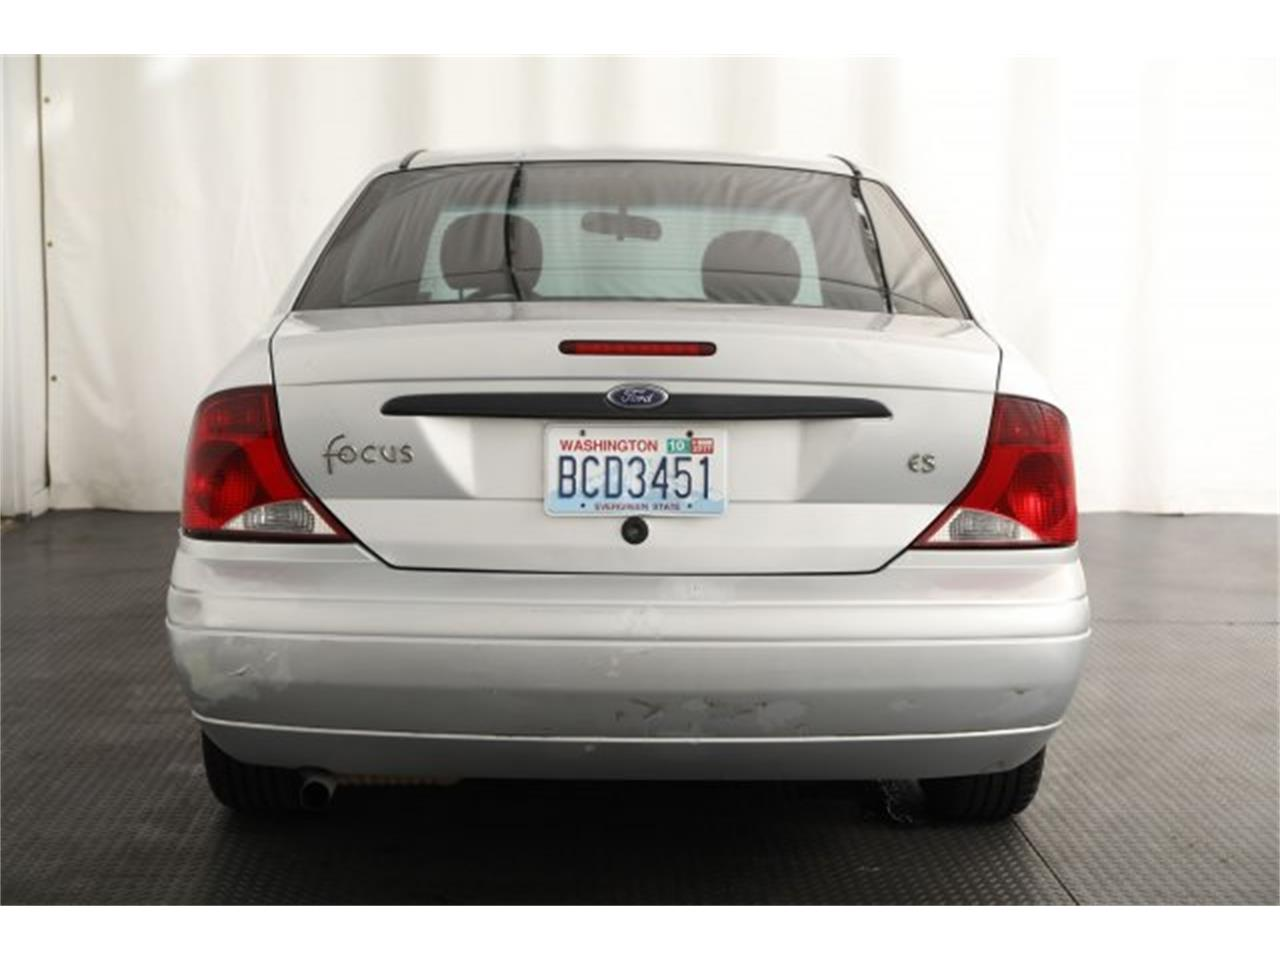 Large Picture of 2003 Ford Focus located in Washington - $4,995.00 Offered by Carson Cars - LMHH